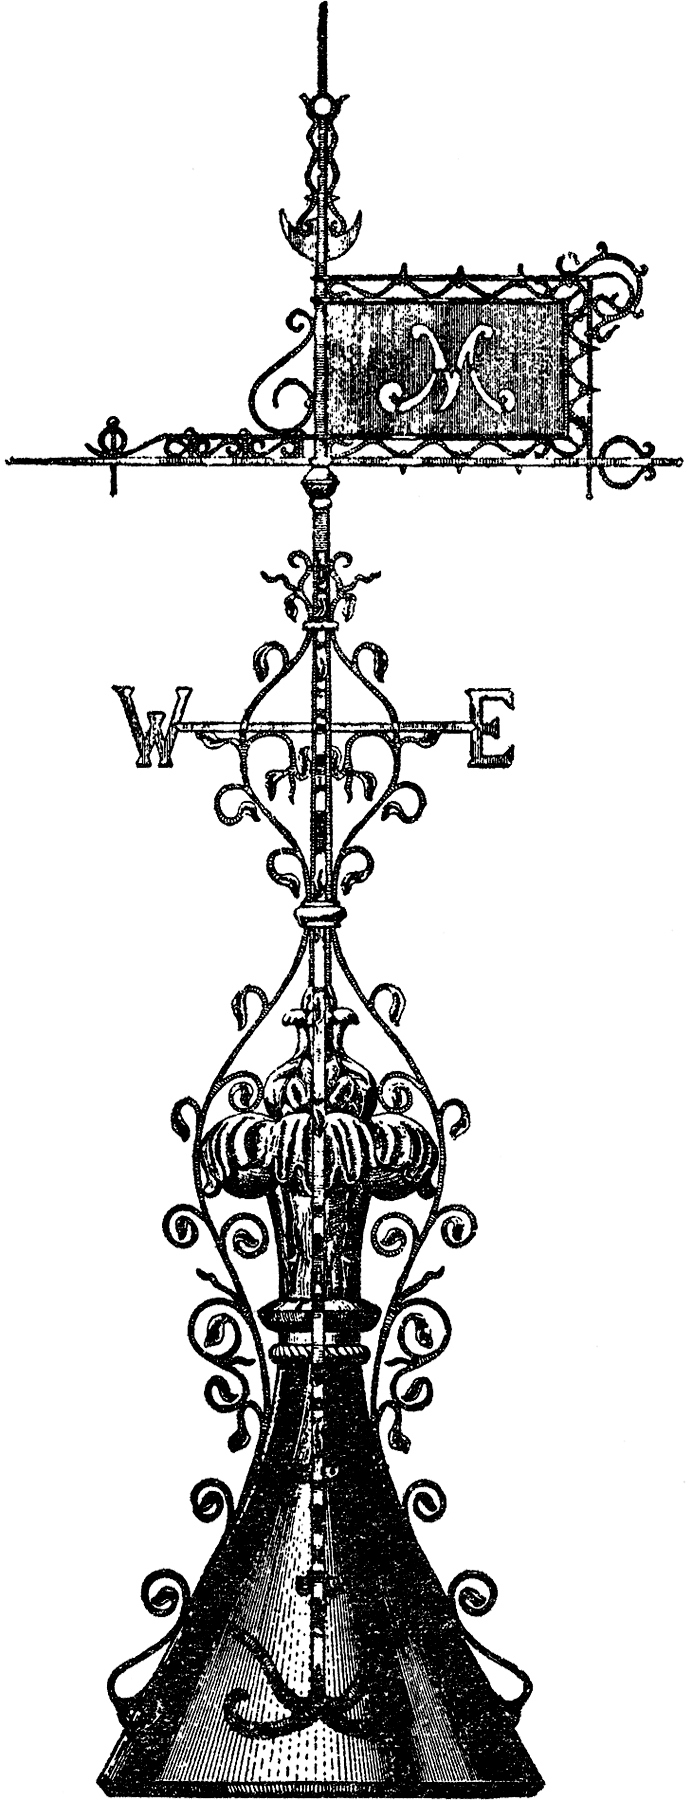 Fancy Weather Vane Image